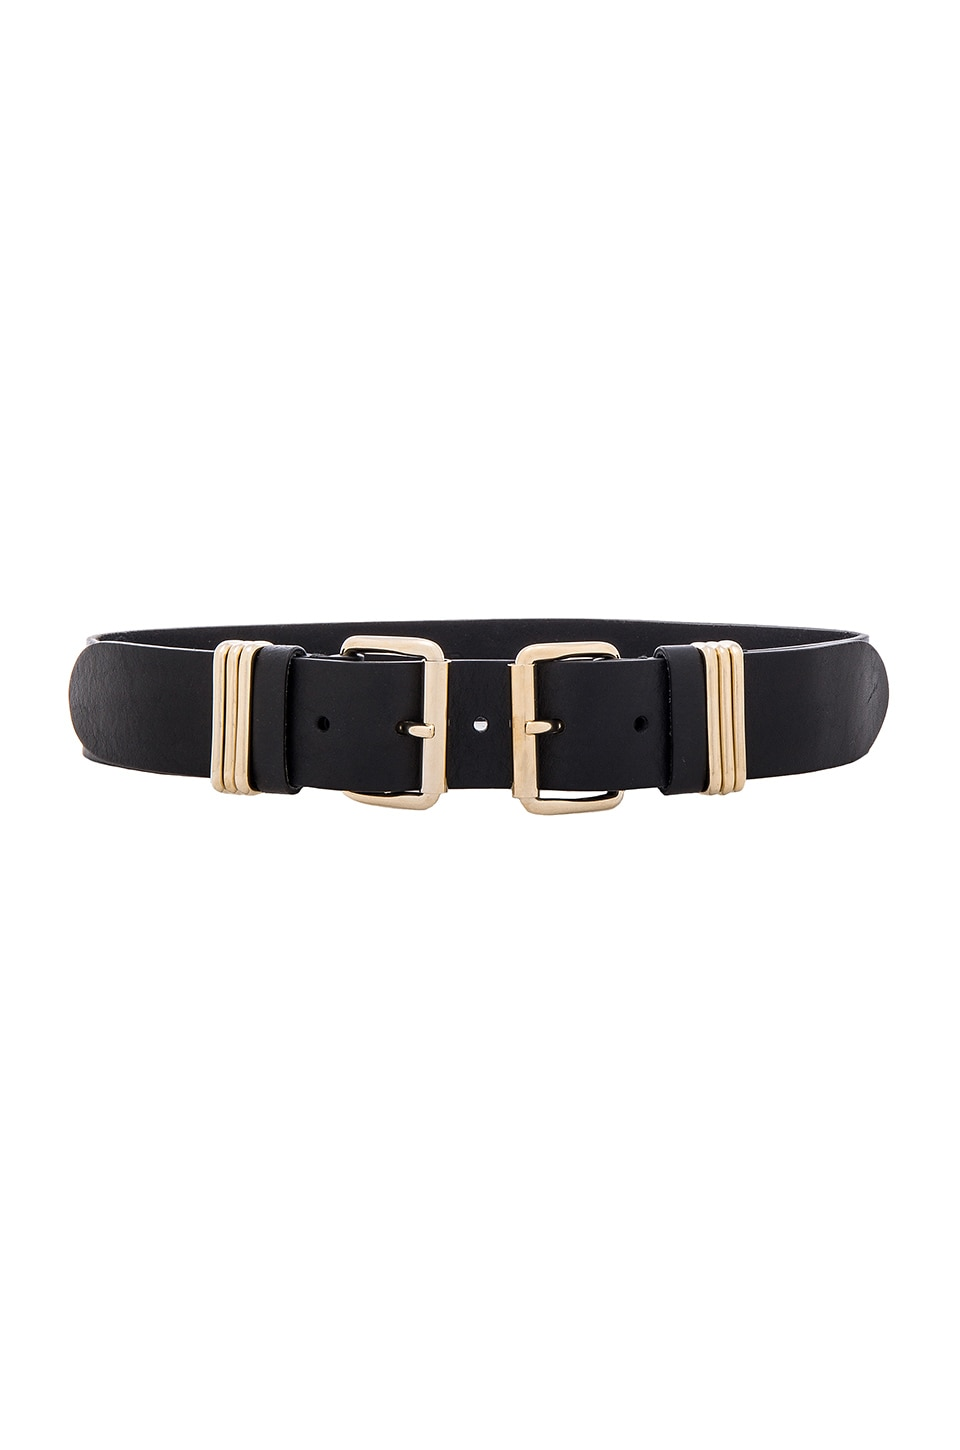 B-Low the Belt Bangles Belt in Black & Gold